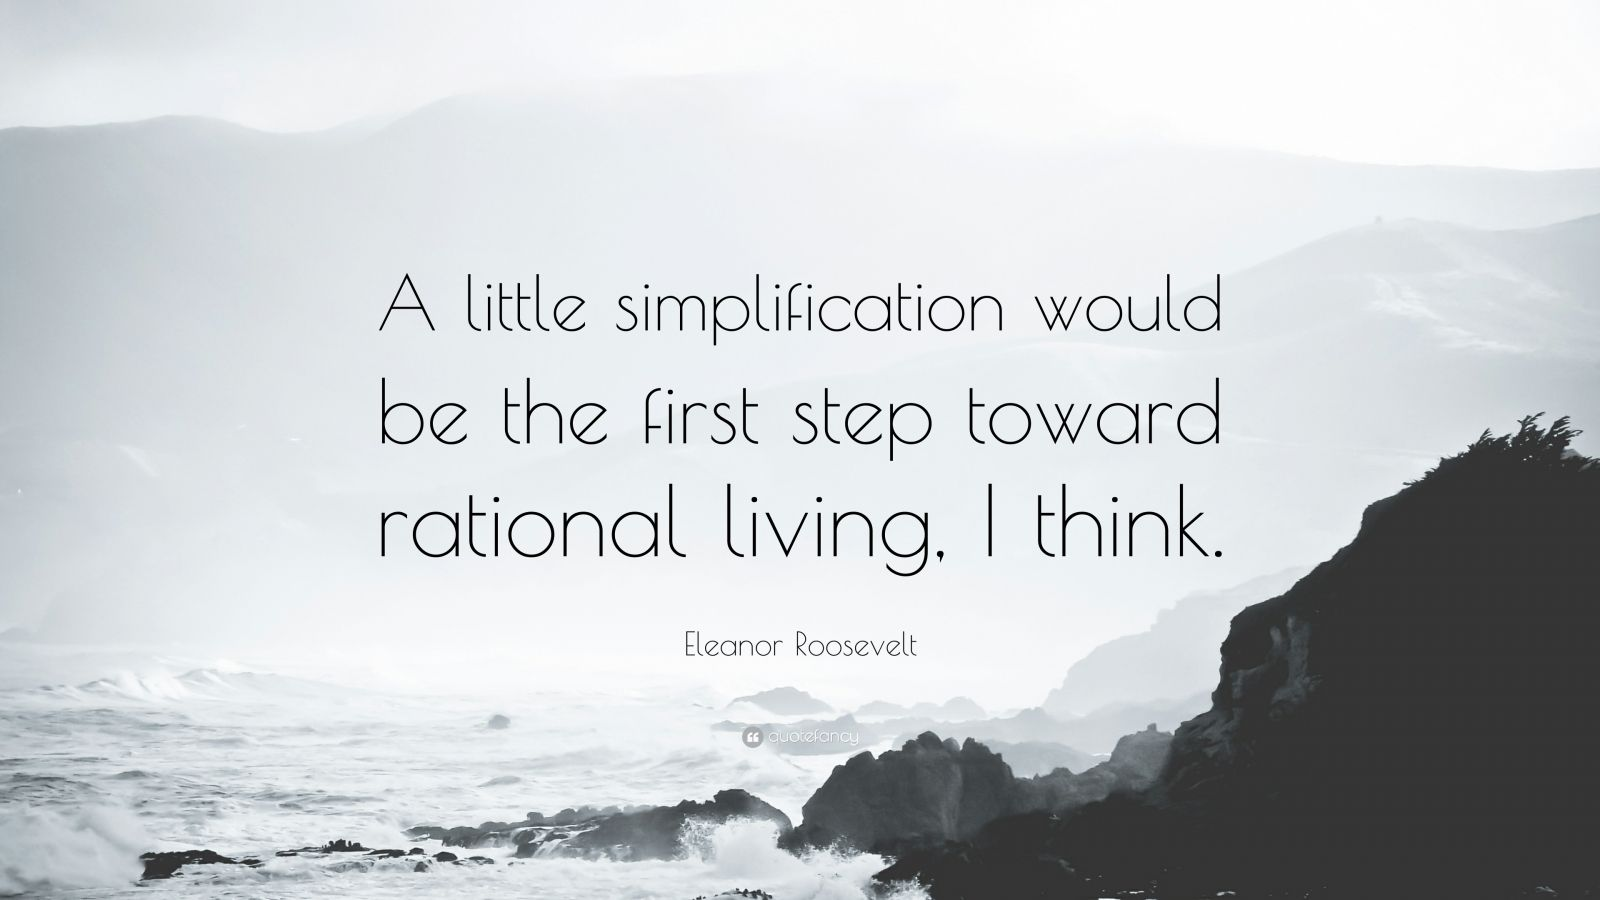 """Eleanor Roosevelt Quote: """"A little simplification would be the first step toward rational living, I think."""""""